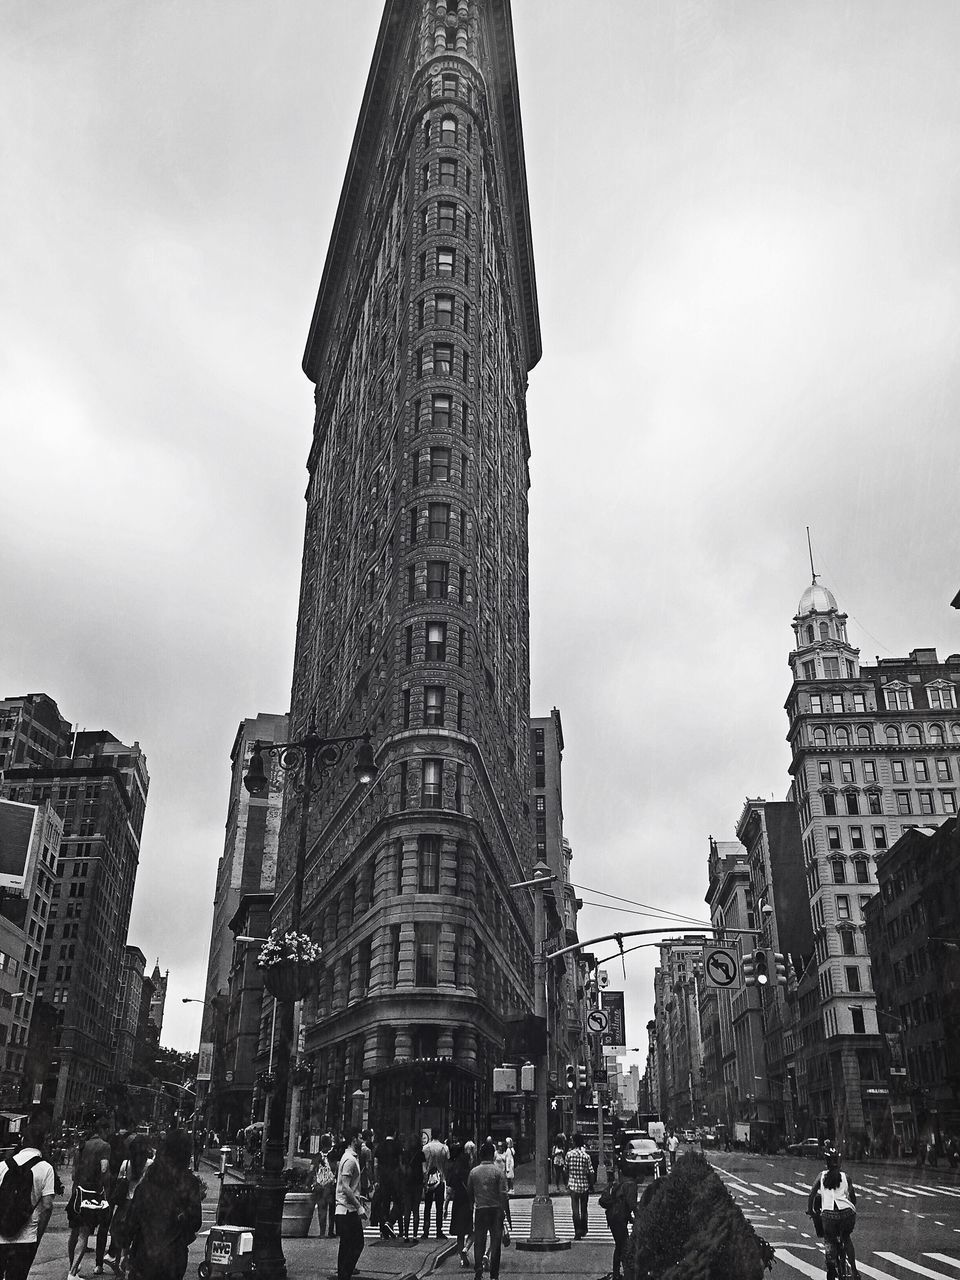 architecture, building exterior, large group of people, built structure, tall - high, tower, skyscraper, city, real people, sky, day, travel destinations, city life, outdoors, history, men, women, lifestyles, modern, crowd, cityscape, people